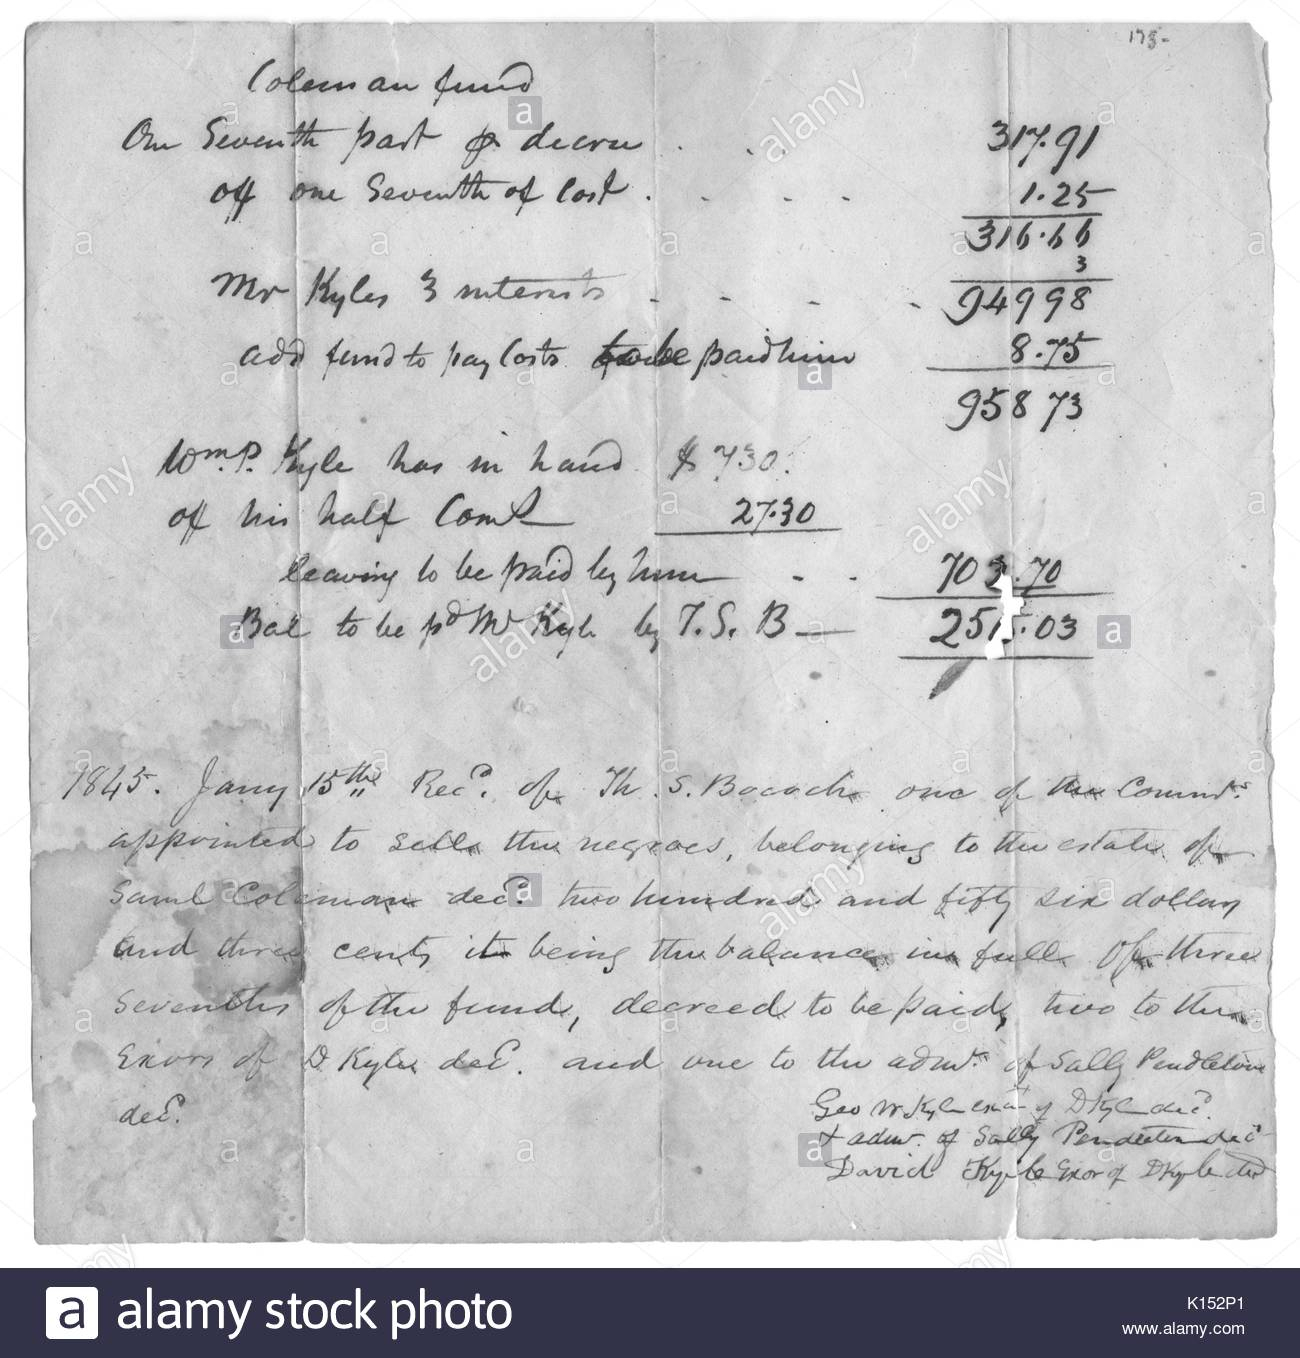 A Hand Written Bill Of Sale For Slaves In Order To Settle An